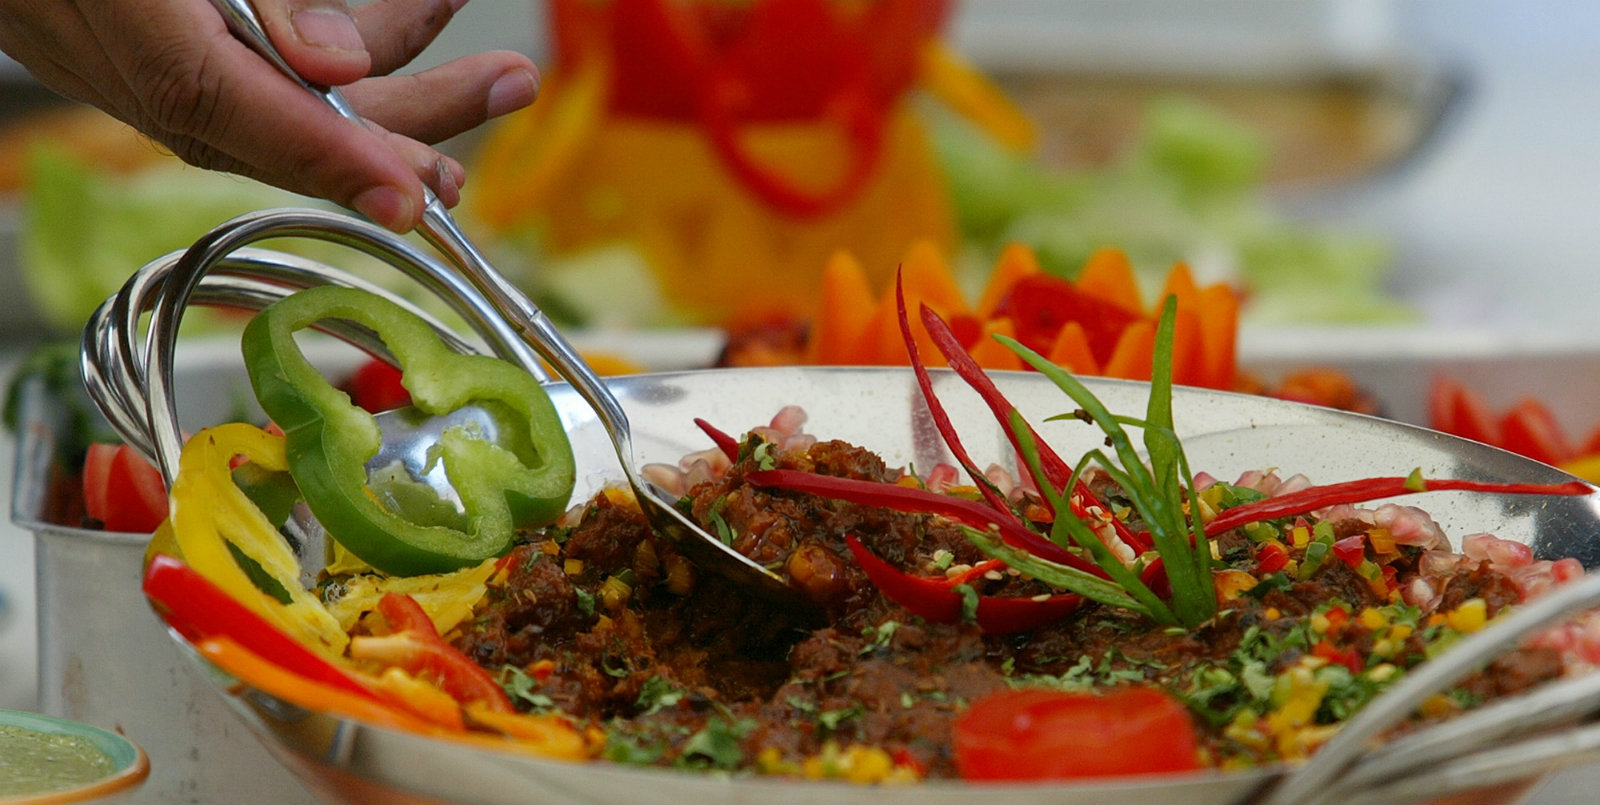 Winners of the best Bangladesh curry competition Tariq Mahmood, and Mohamed Rafiq, unseen, spoon out some of their food at a tasting in London Thursday Sept. 9, 2004. Mahmood and Rafiq who own a curry house in Bradford, in the north of England won the competition against seven other London based curry house's at a tasting in London's Brick Lane centre of the Bangladeshi community in Britain. The food is a boned lamb and lentil based curry.